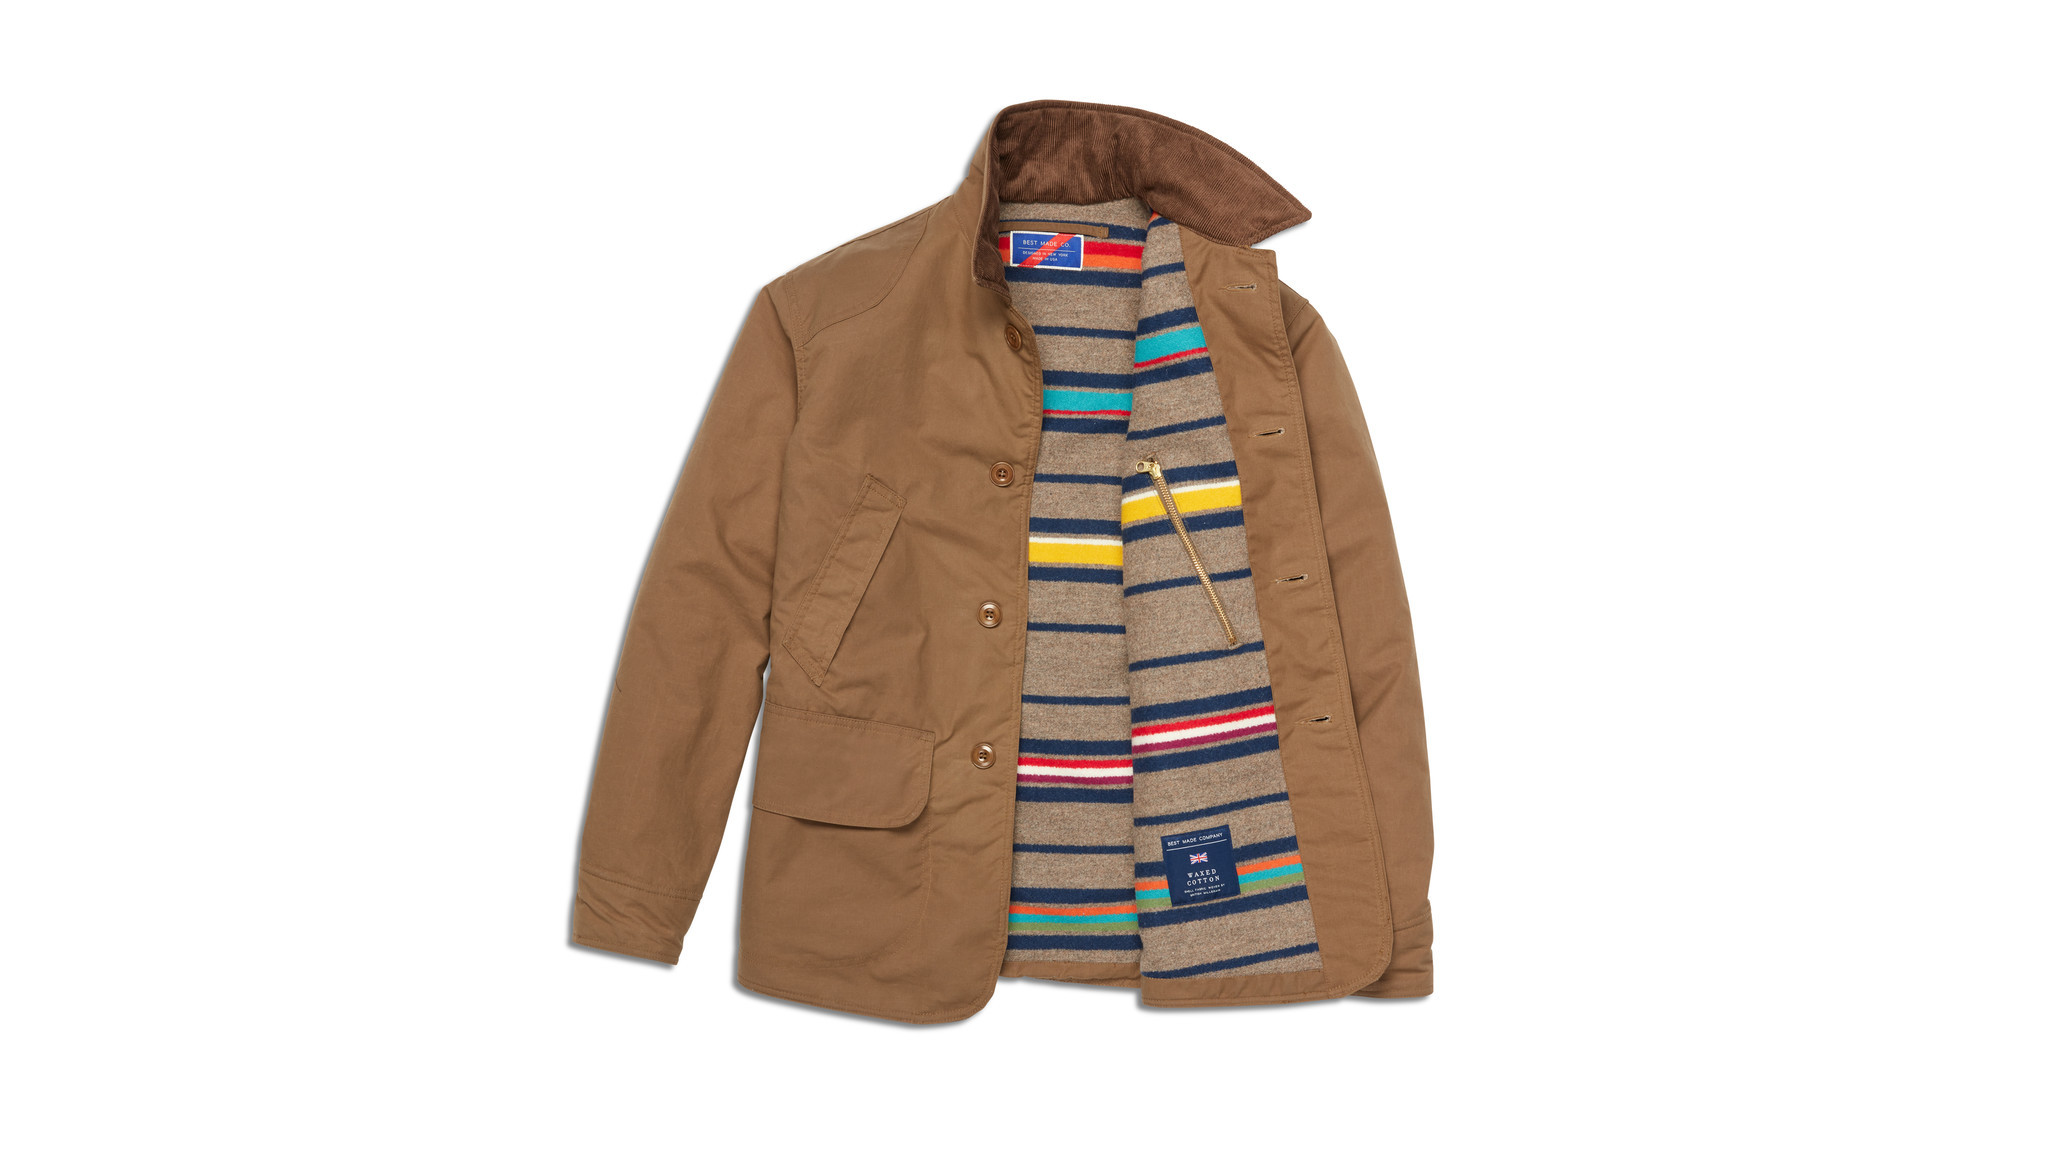 Best Made Company waxed cotton Cruiser jacket with Pendleton Woolen Mills blanket lining, $598 at Be